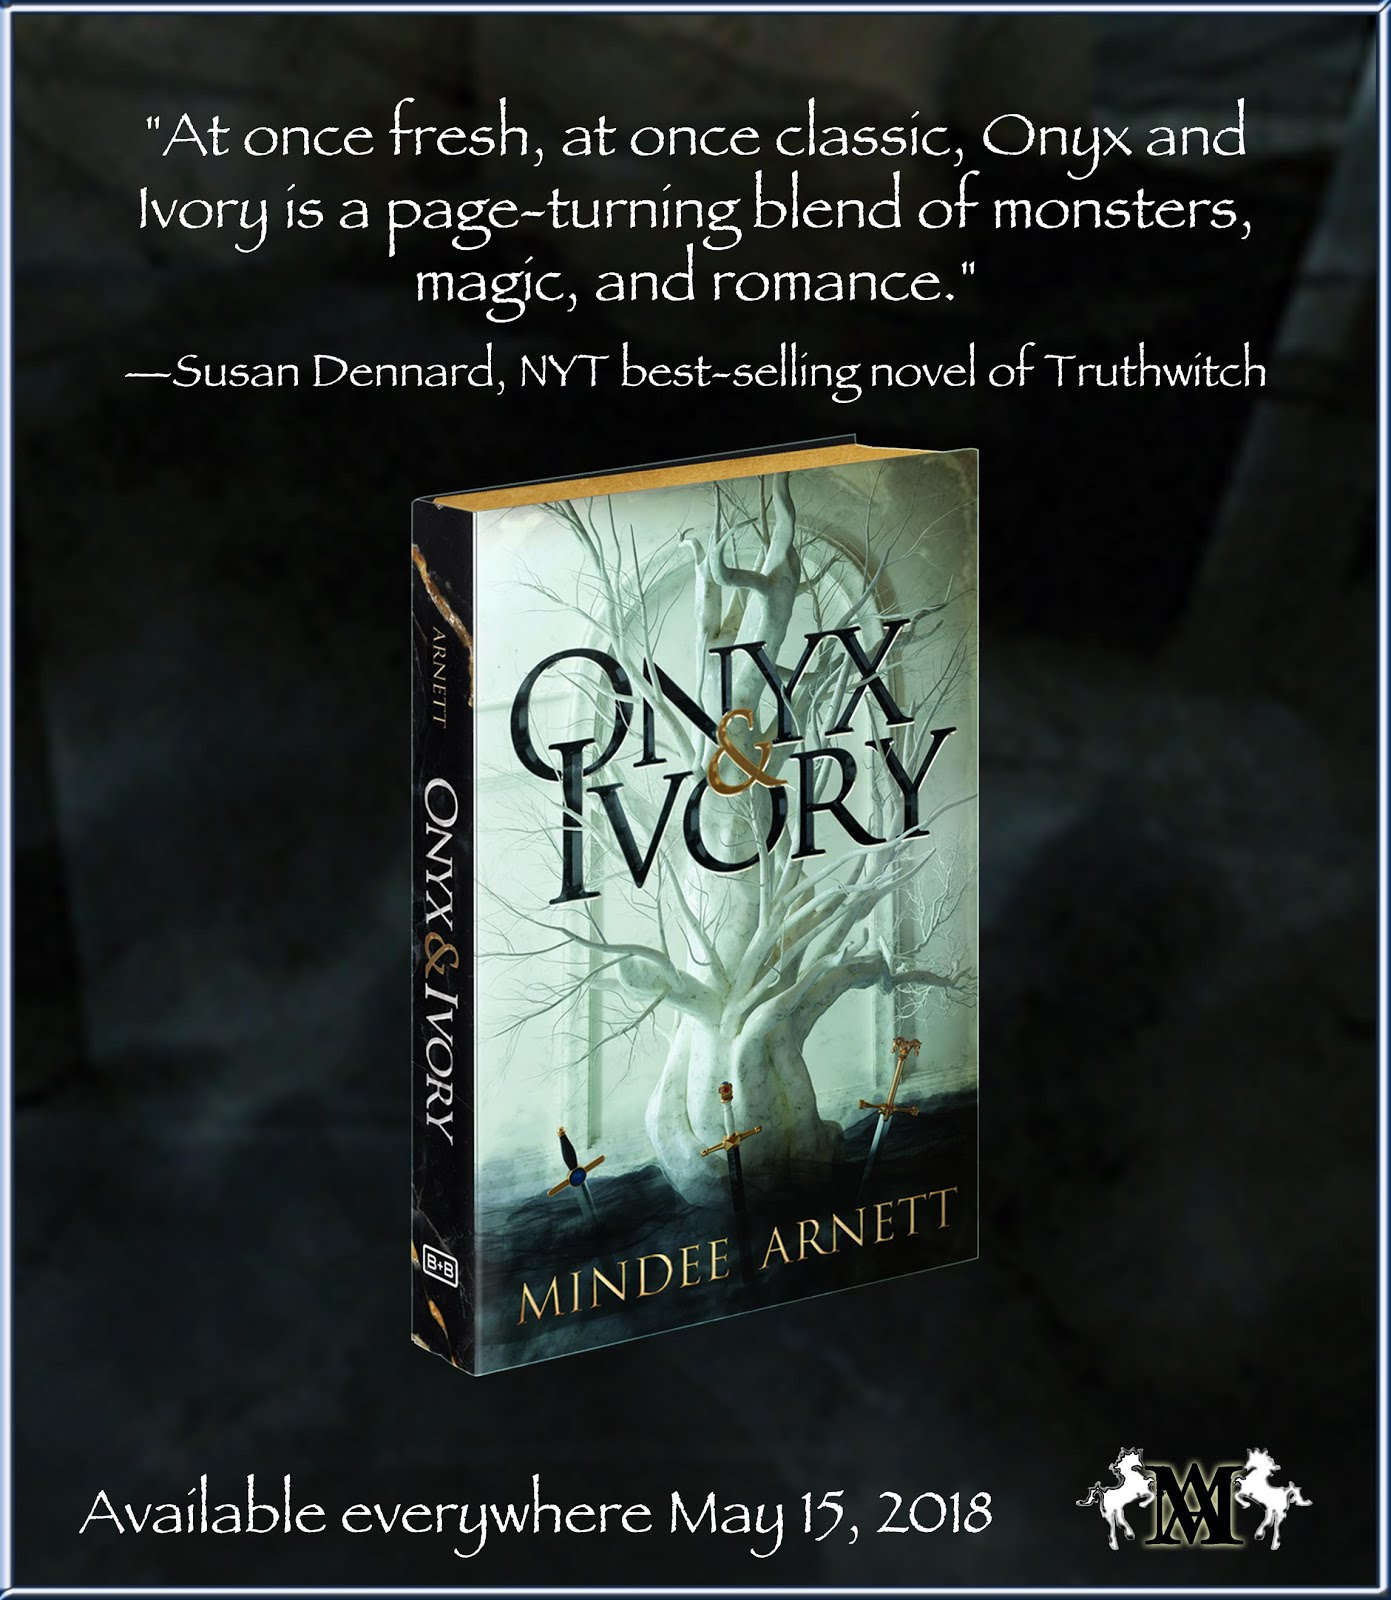 ONYX & IVORY RELEASES MAY 15, 2018